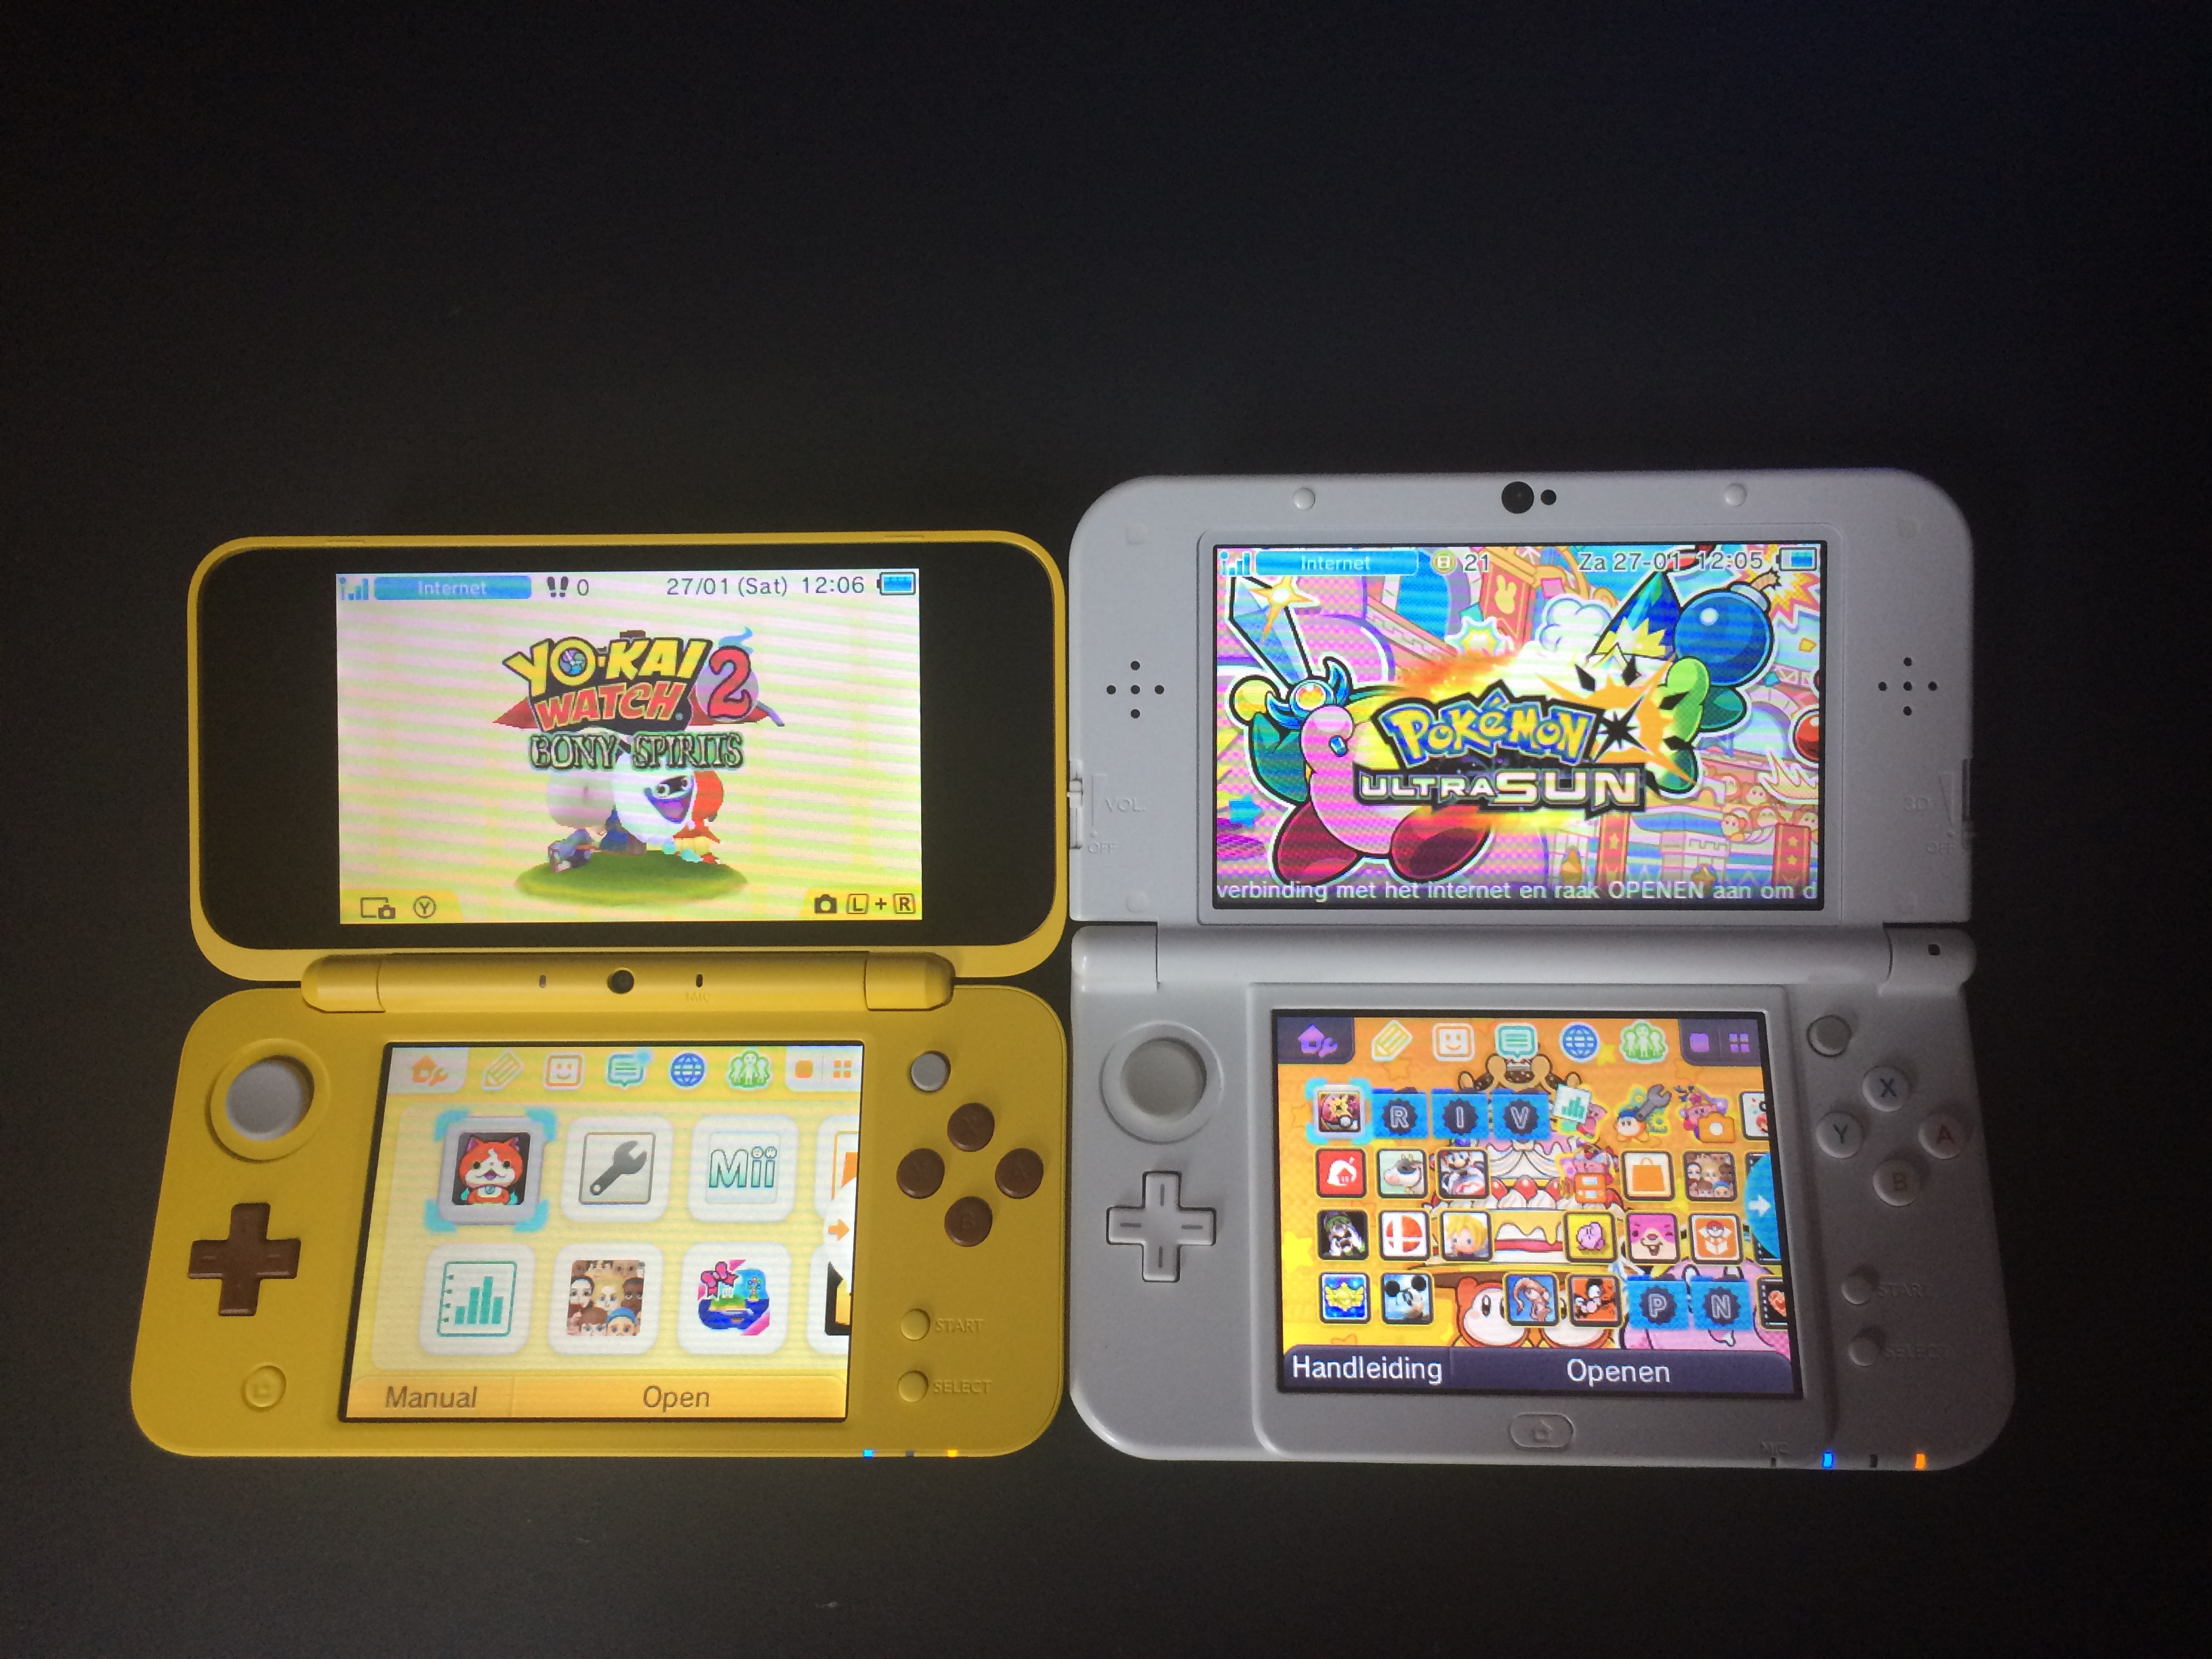 2DS & 3DS open side by side